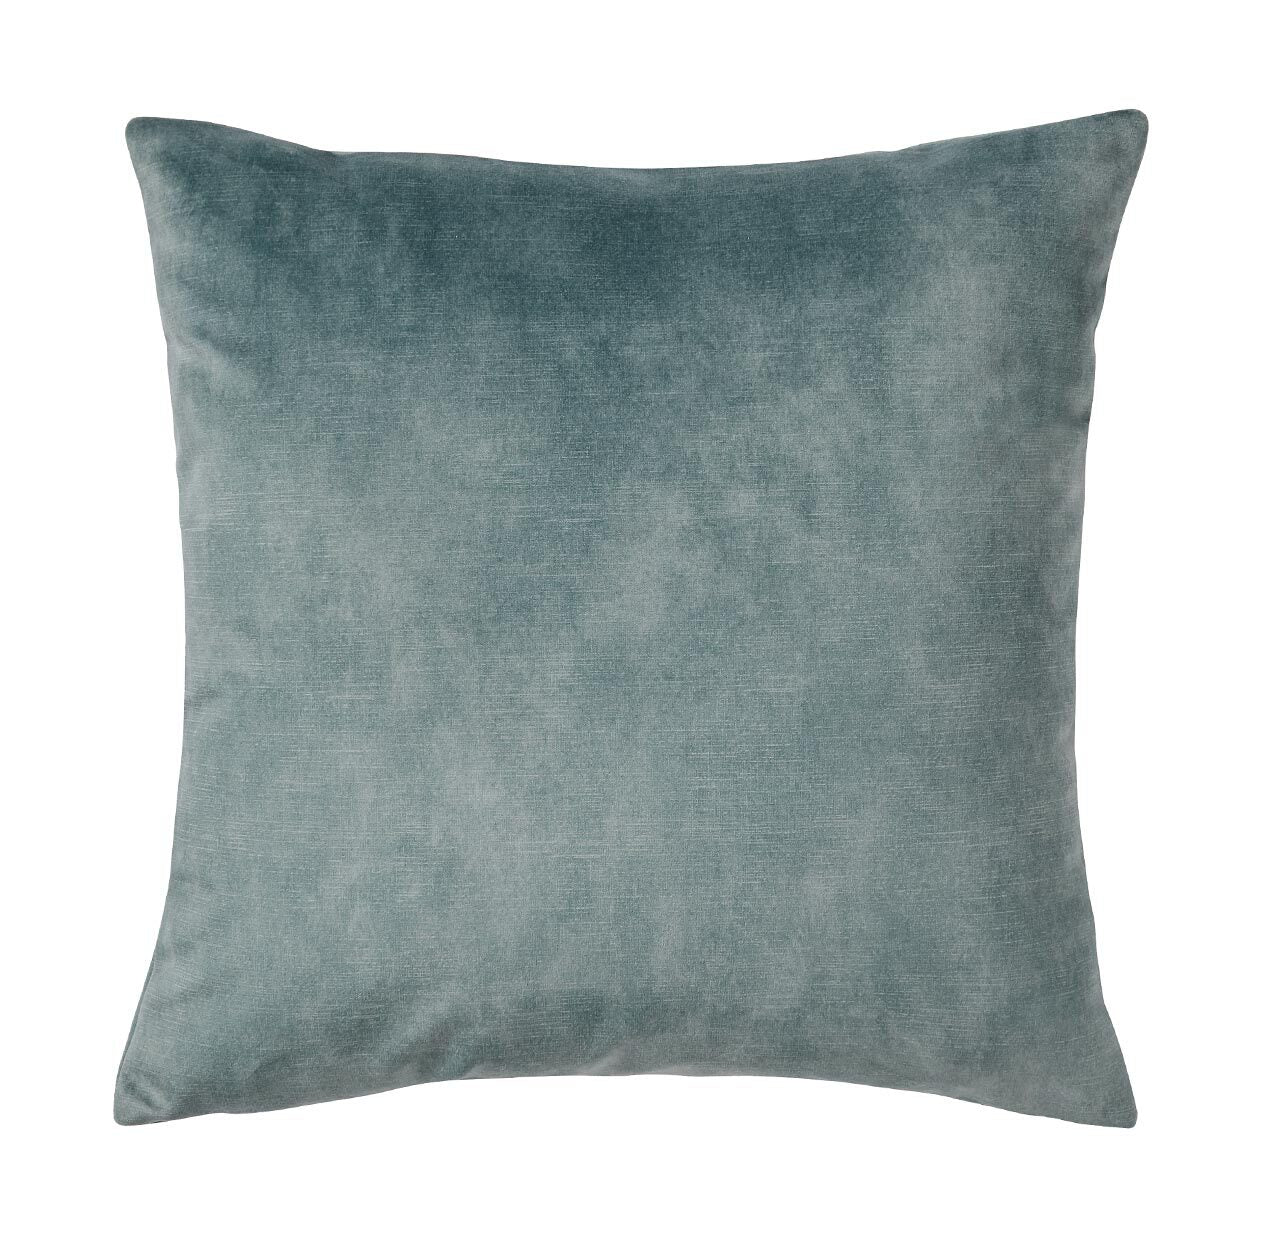 Lovely velvet cushion - Aqua